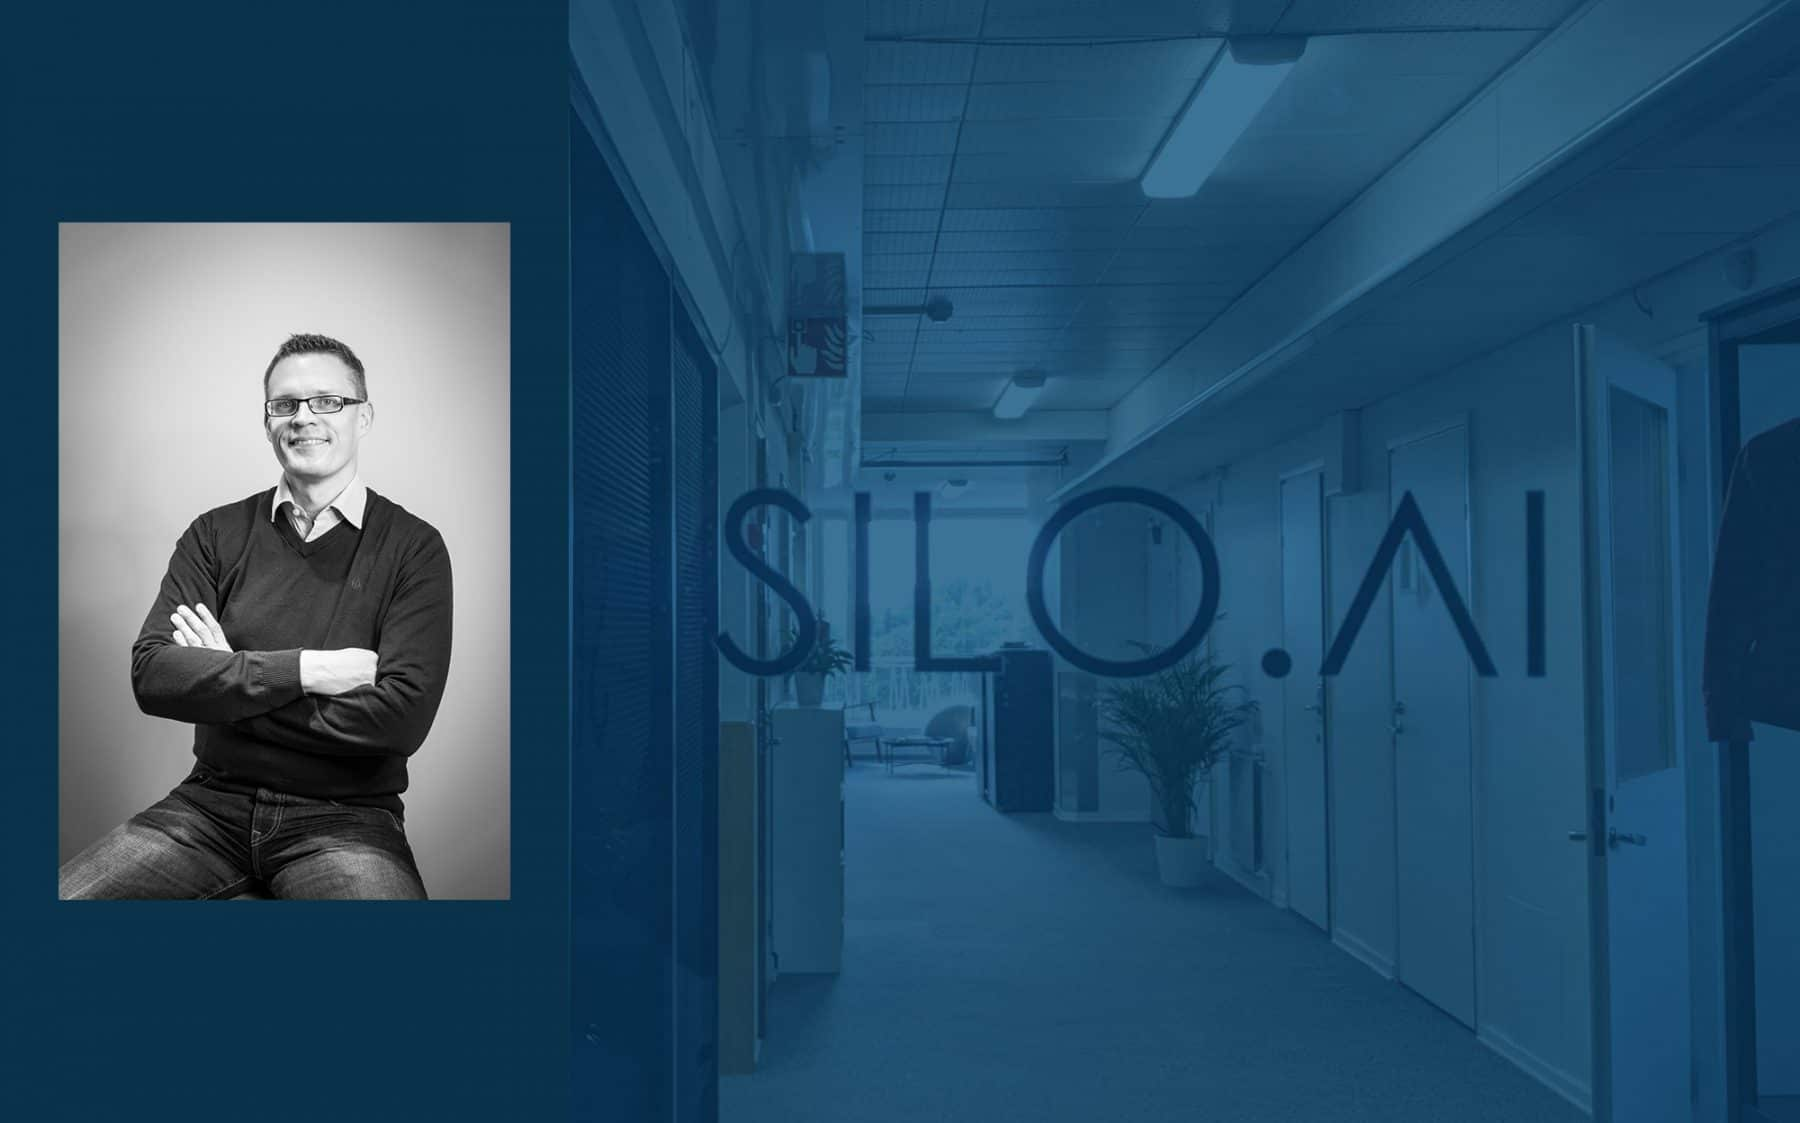 Petteri Mäki joins Silo.AI to support continued growth